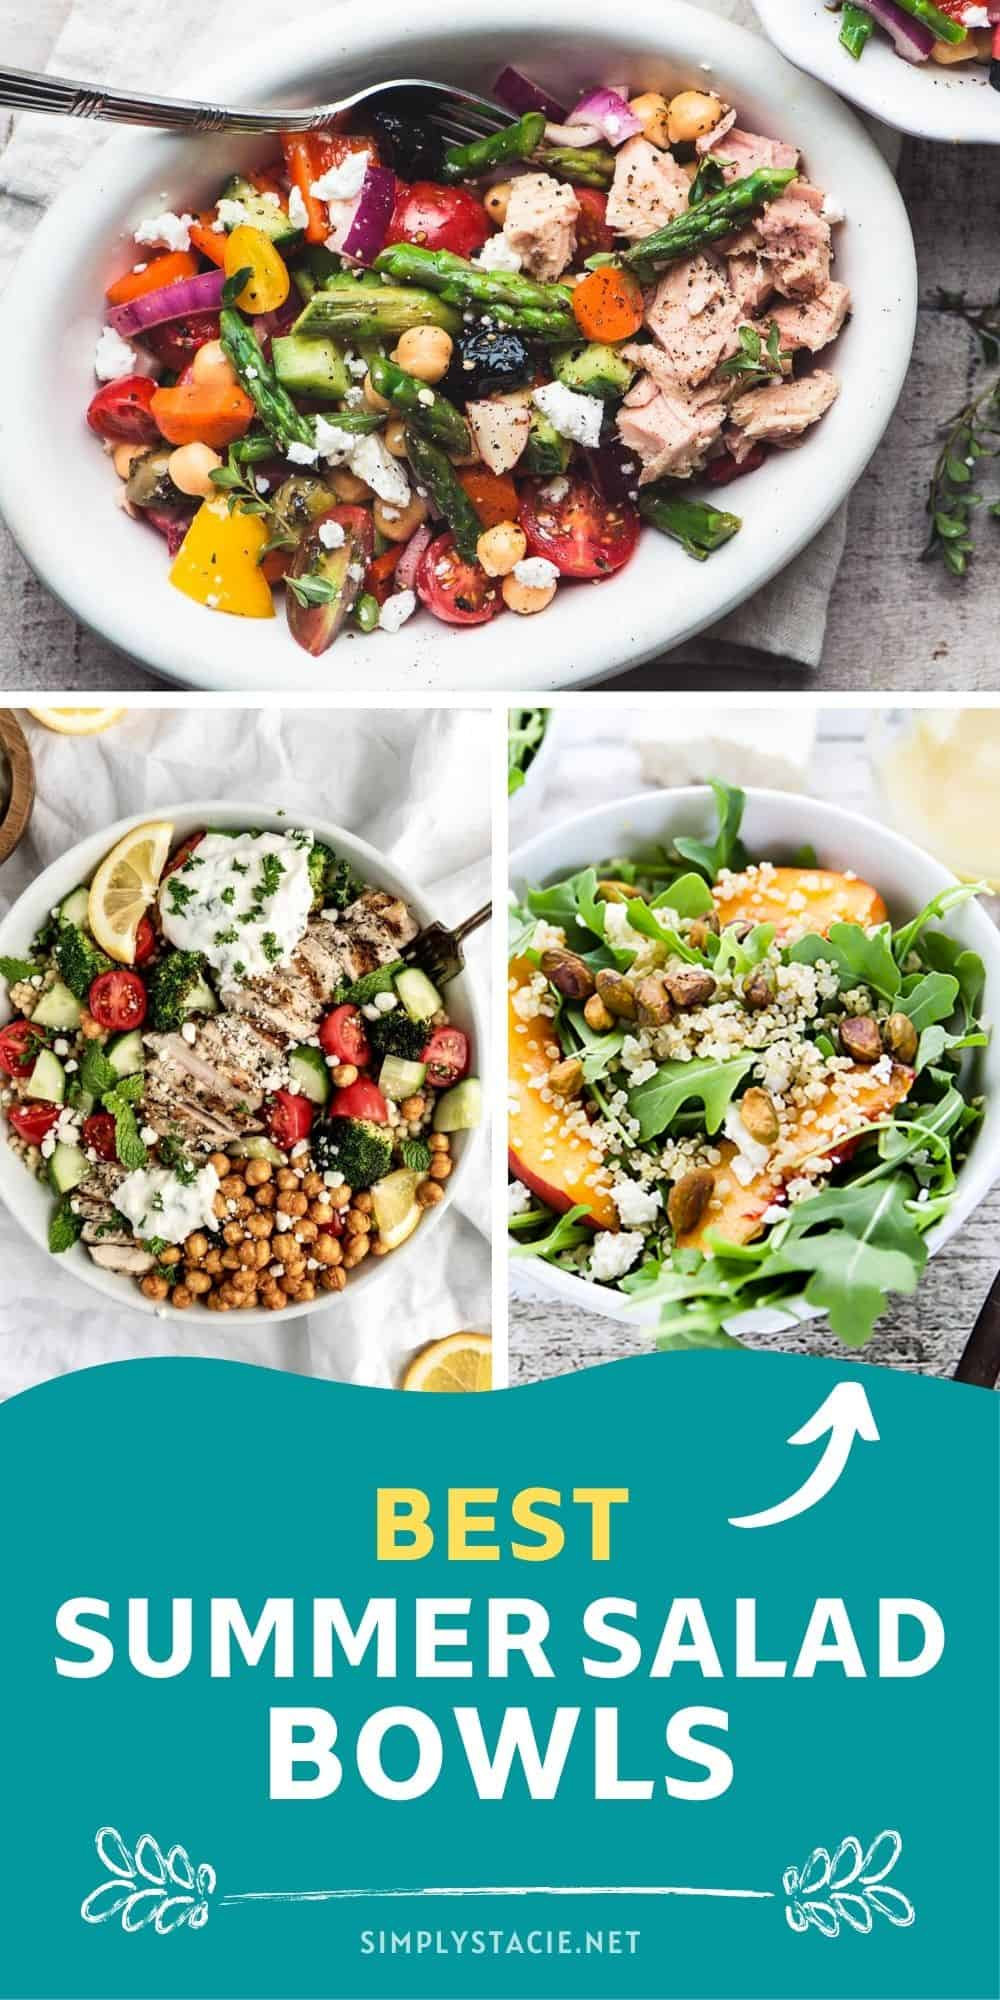 Best Summer Salad Bowls - Fill up on hearty, delicious veggies and satisfy your appetite!